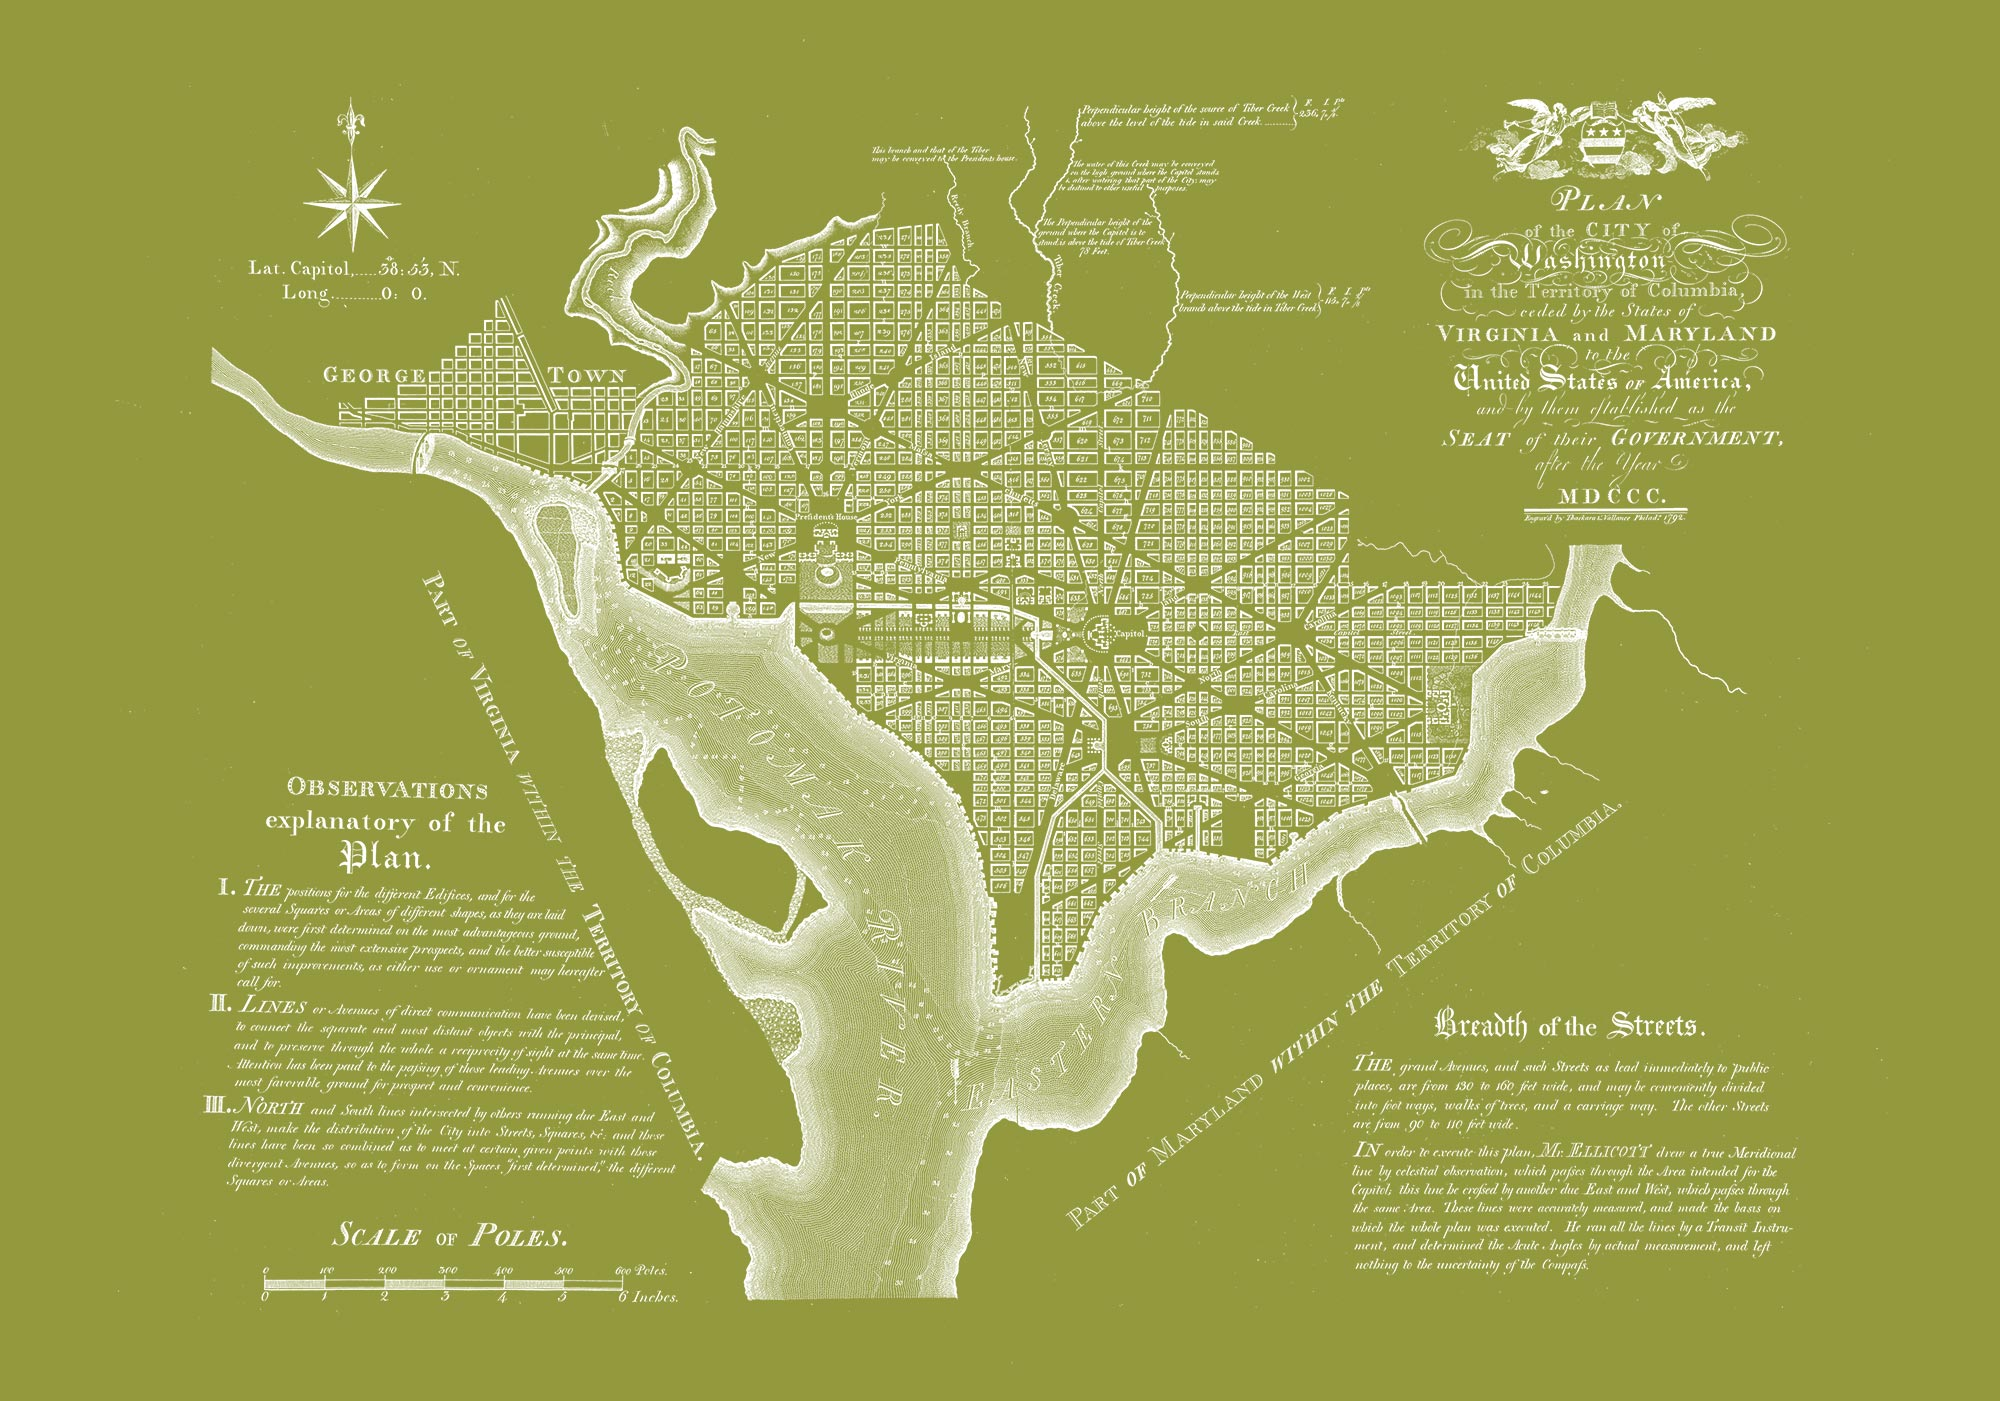 "Washington DC 1792 (olive green canvas, 30"" x 21"")"